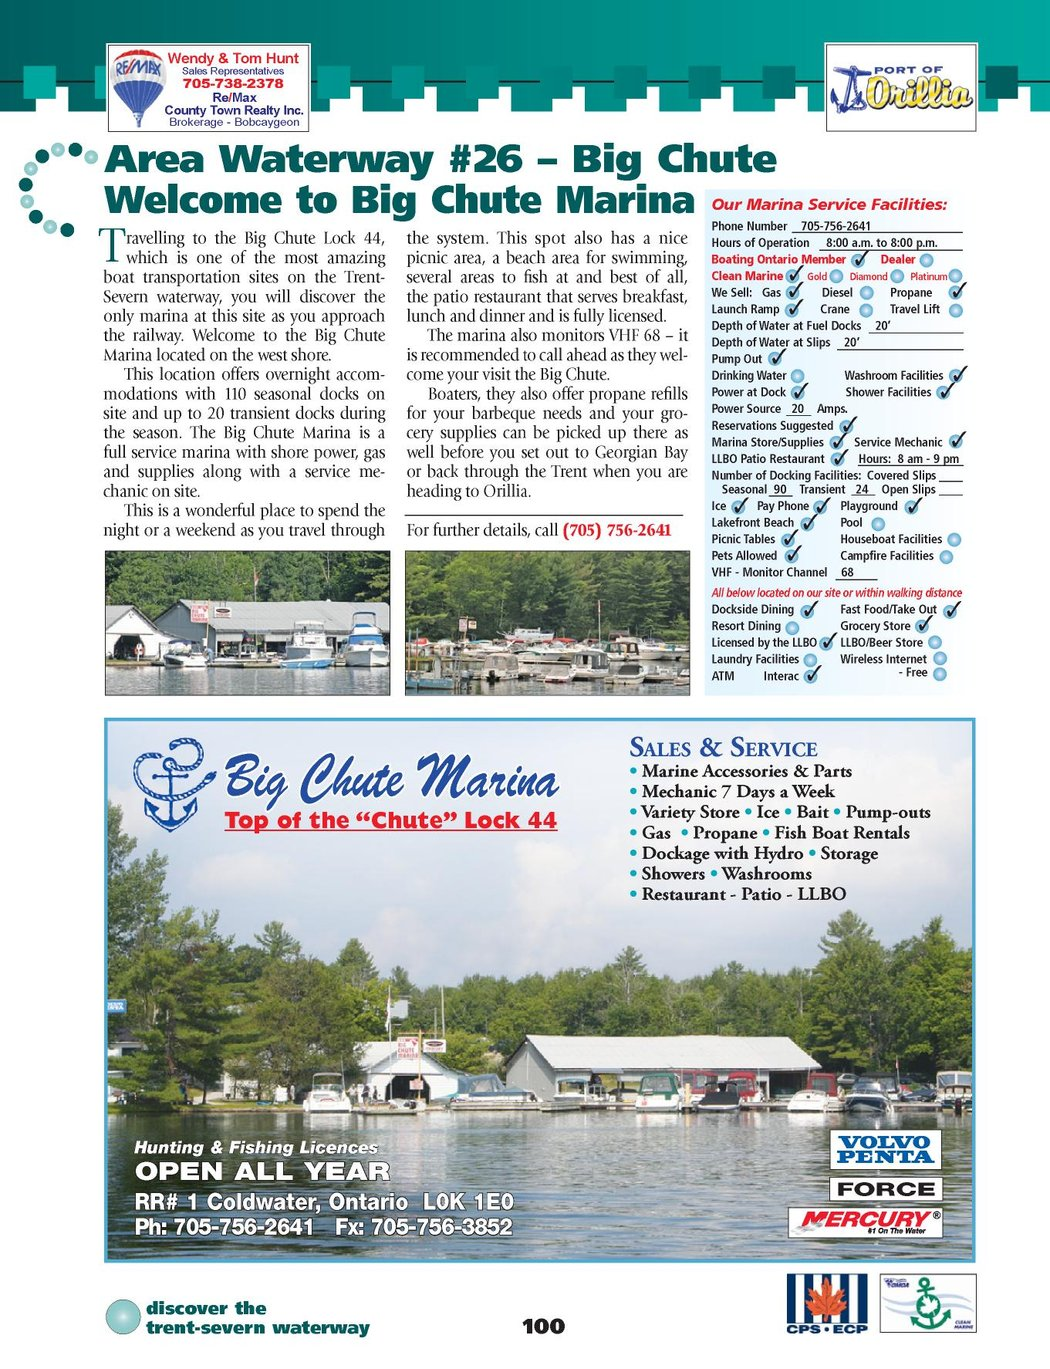 Discover the Trent-Severn Waterway 2011